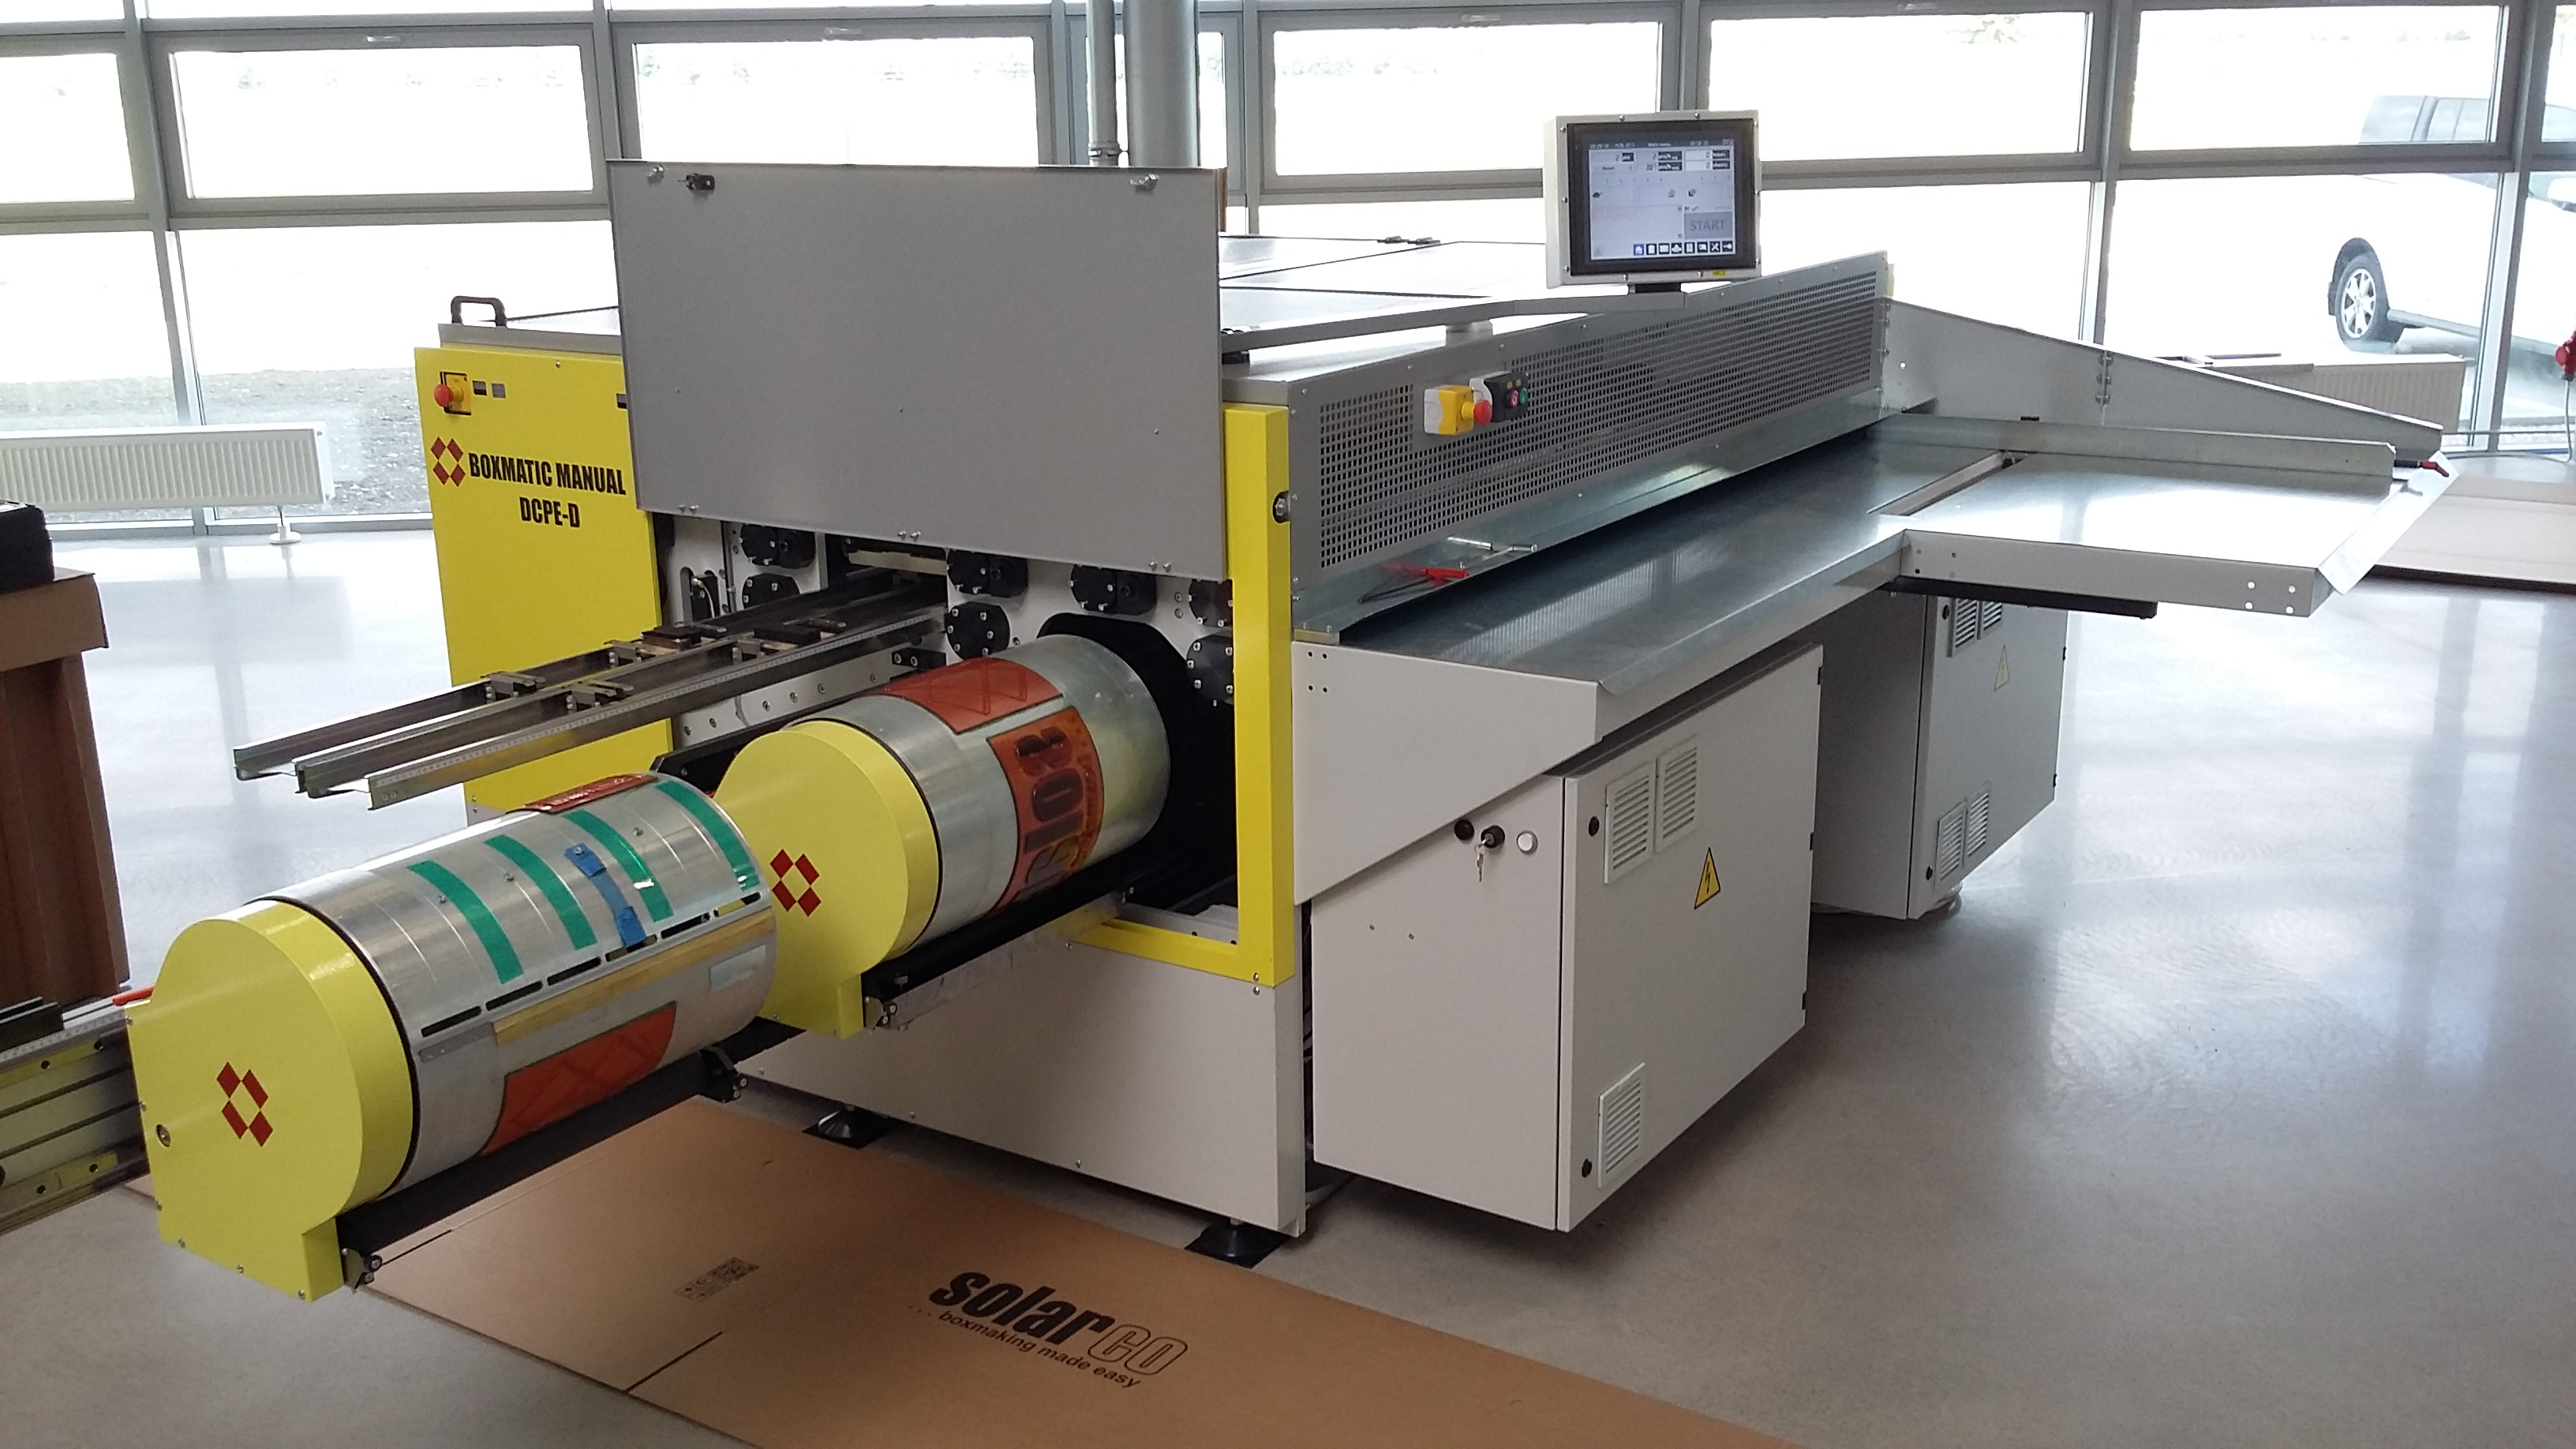 Boxmatic Manual DCFM Doble Troquelado y Cilindros Flexo